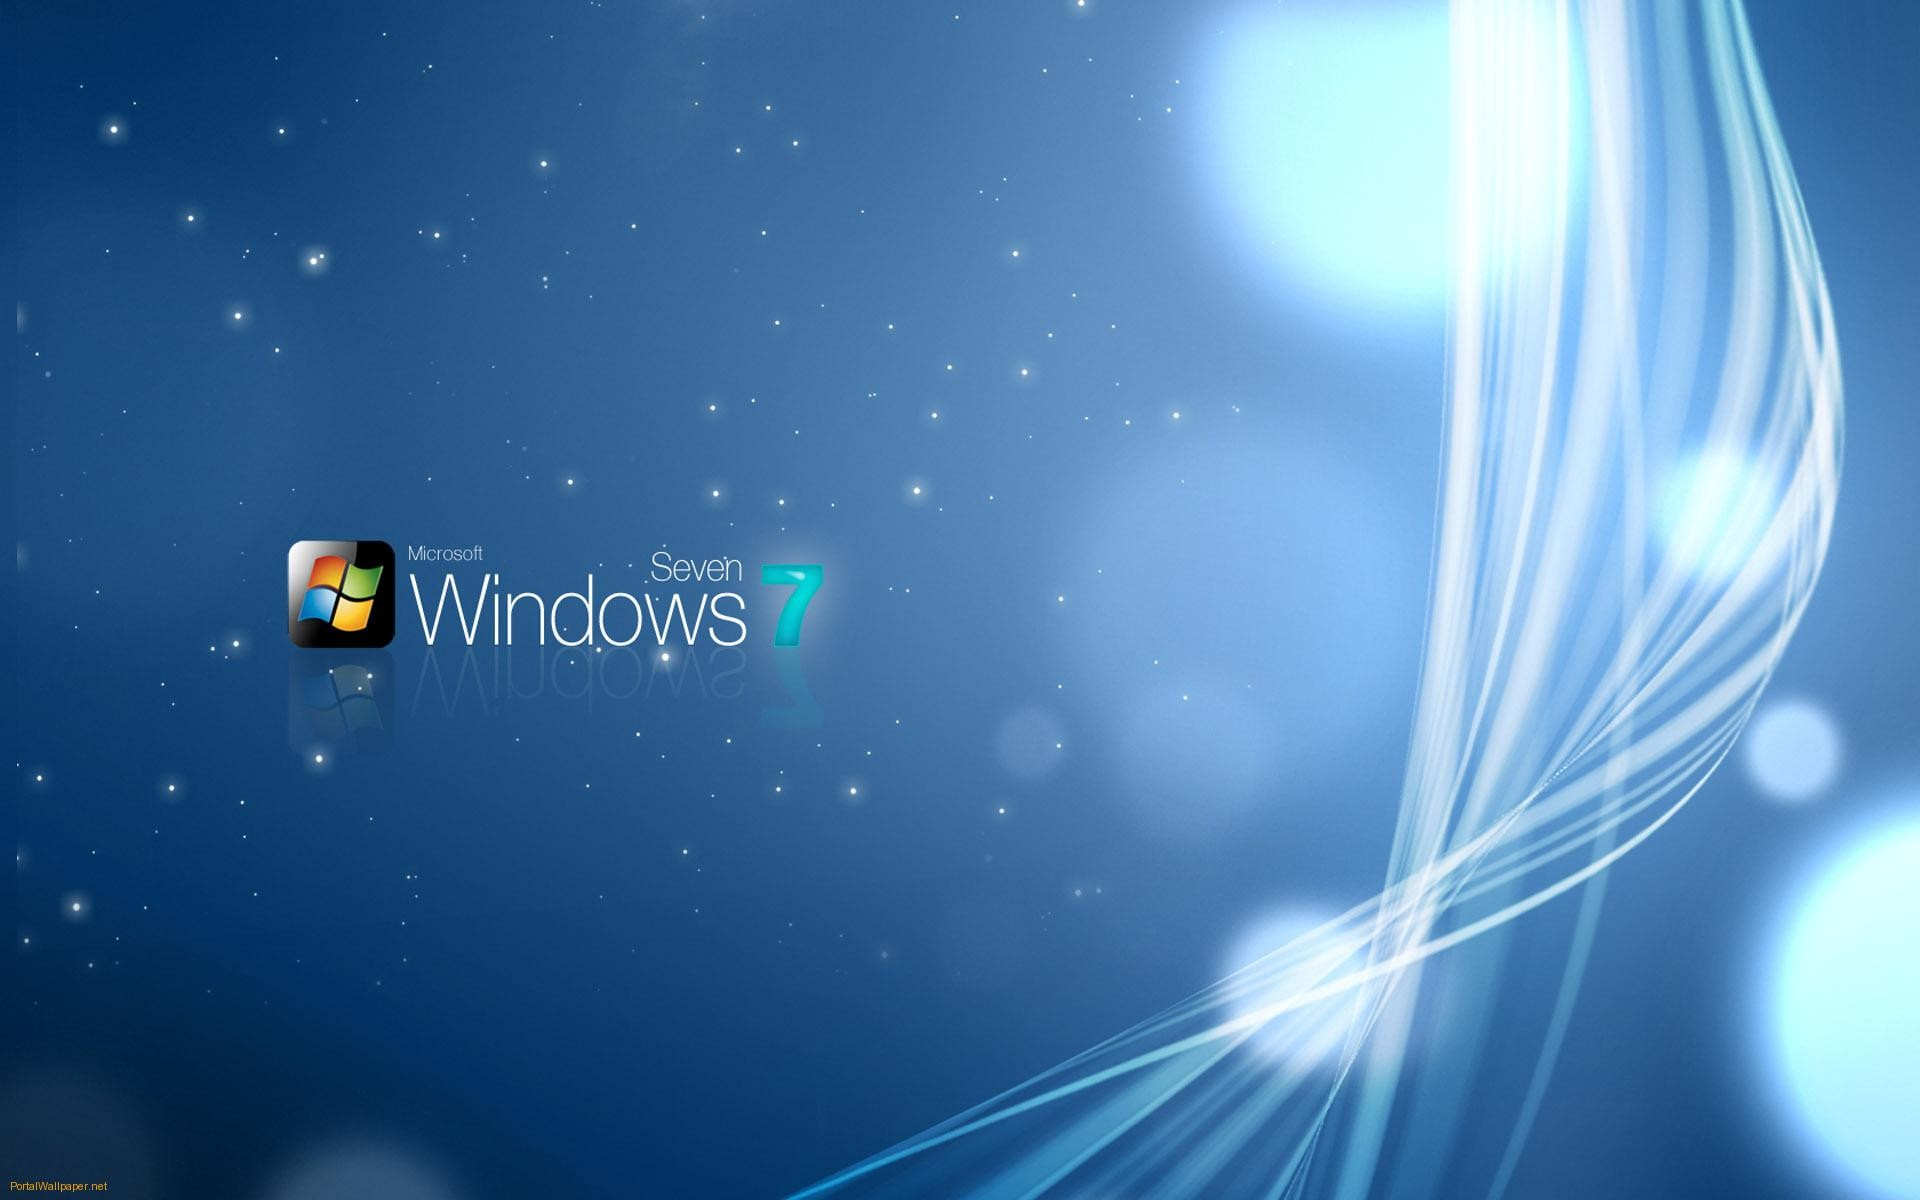 microsoft wallpapers backgrounds themes 51 images